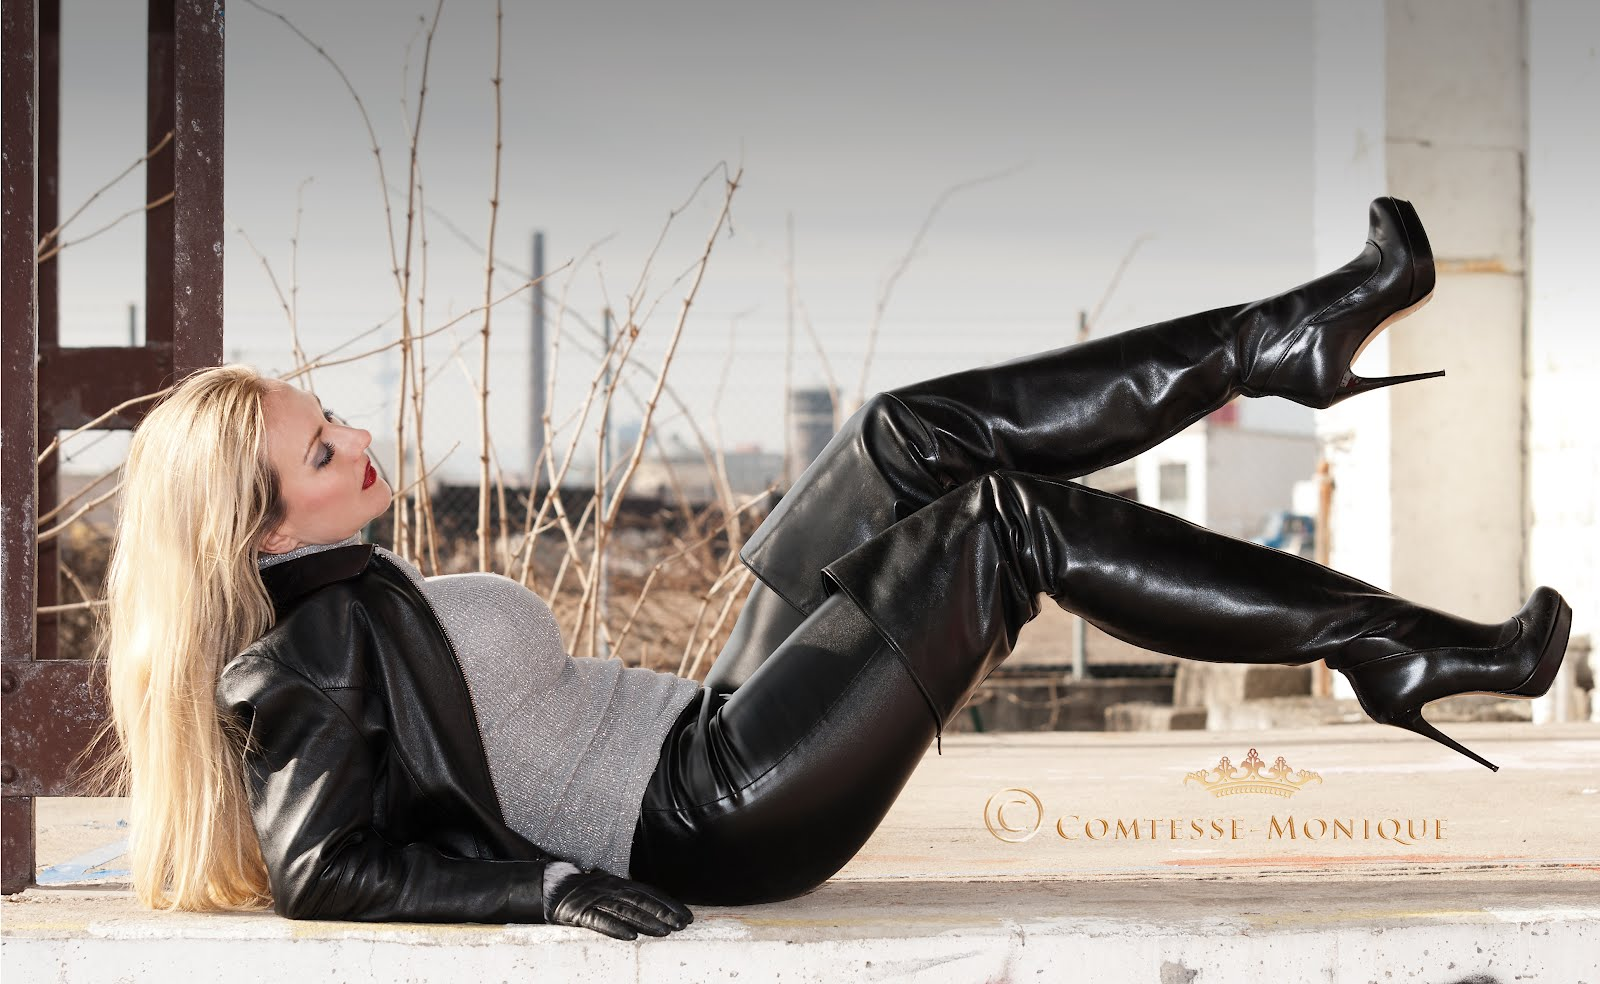 Model Tight Leather Pants For Women